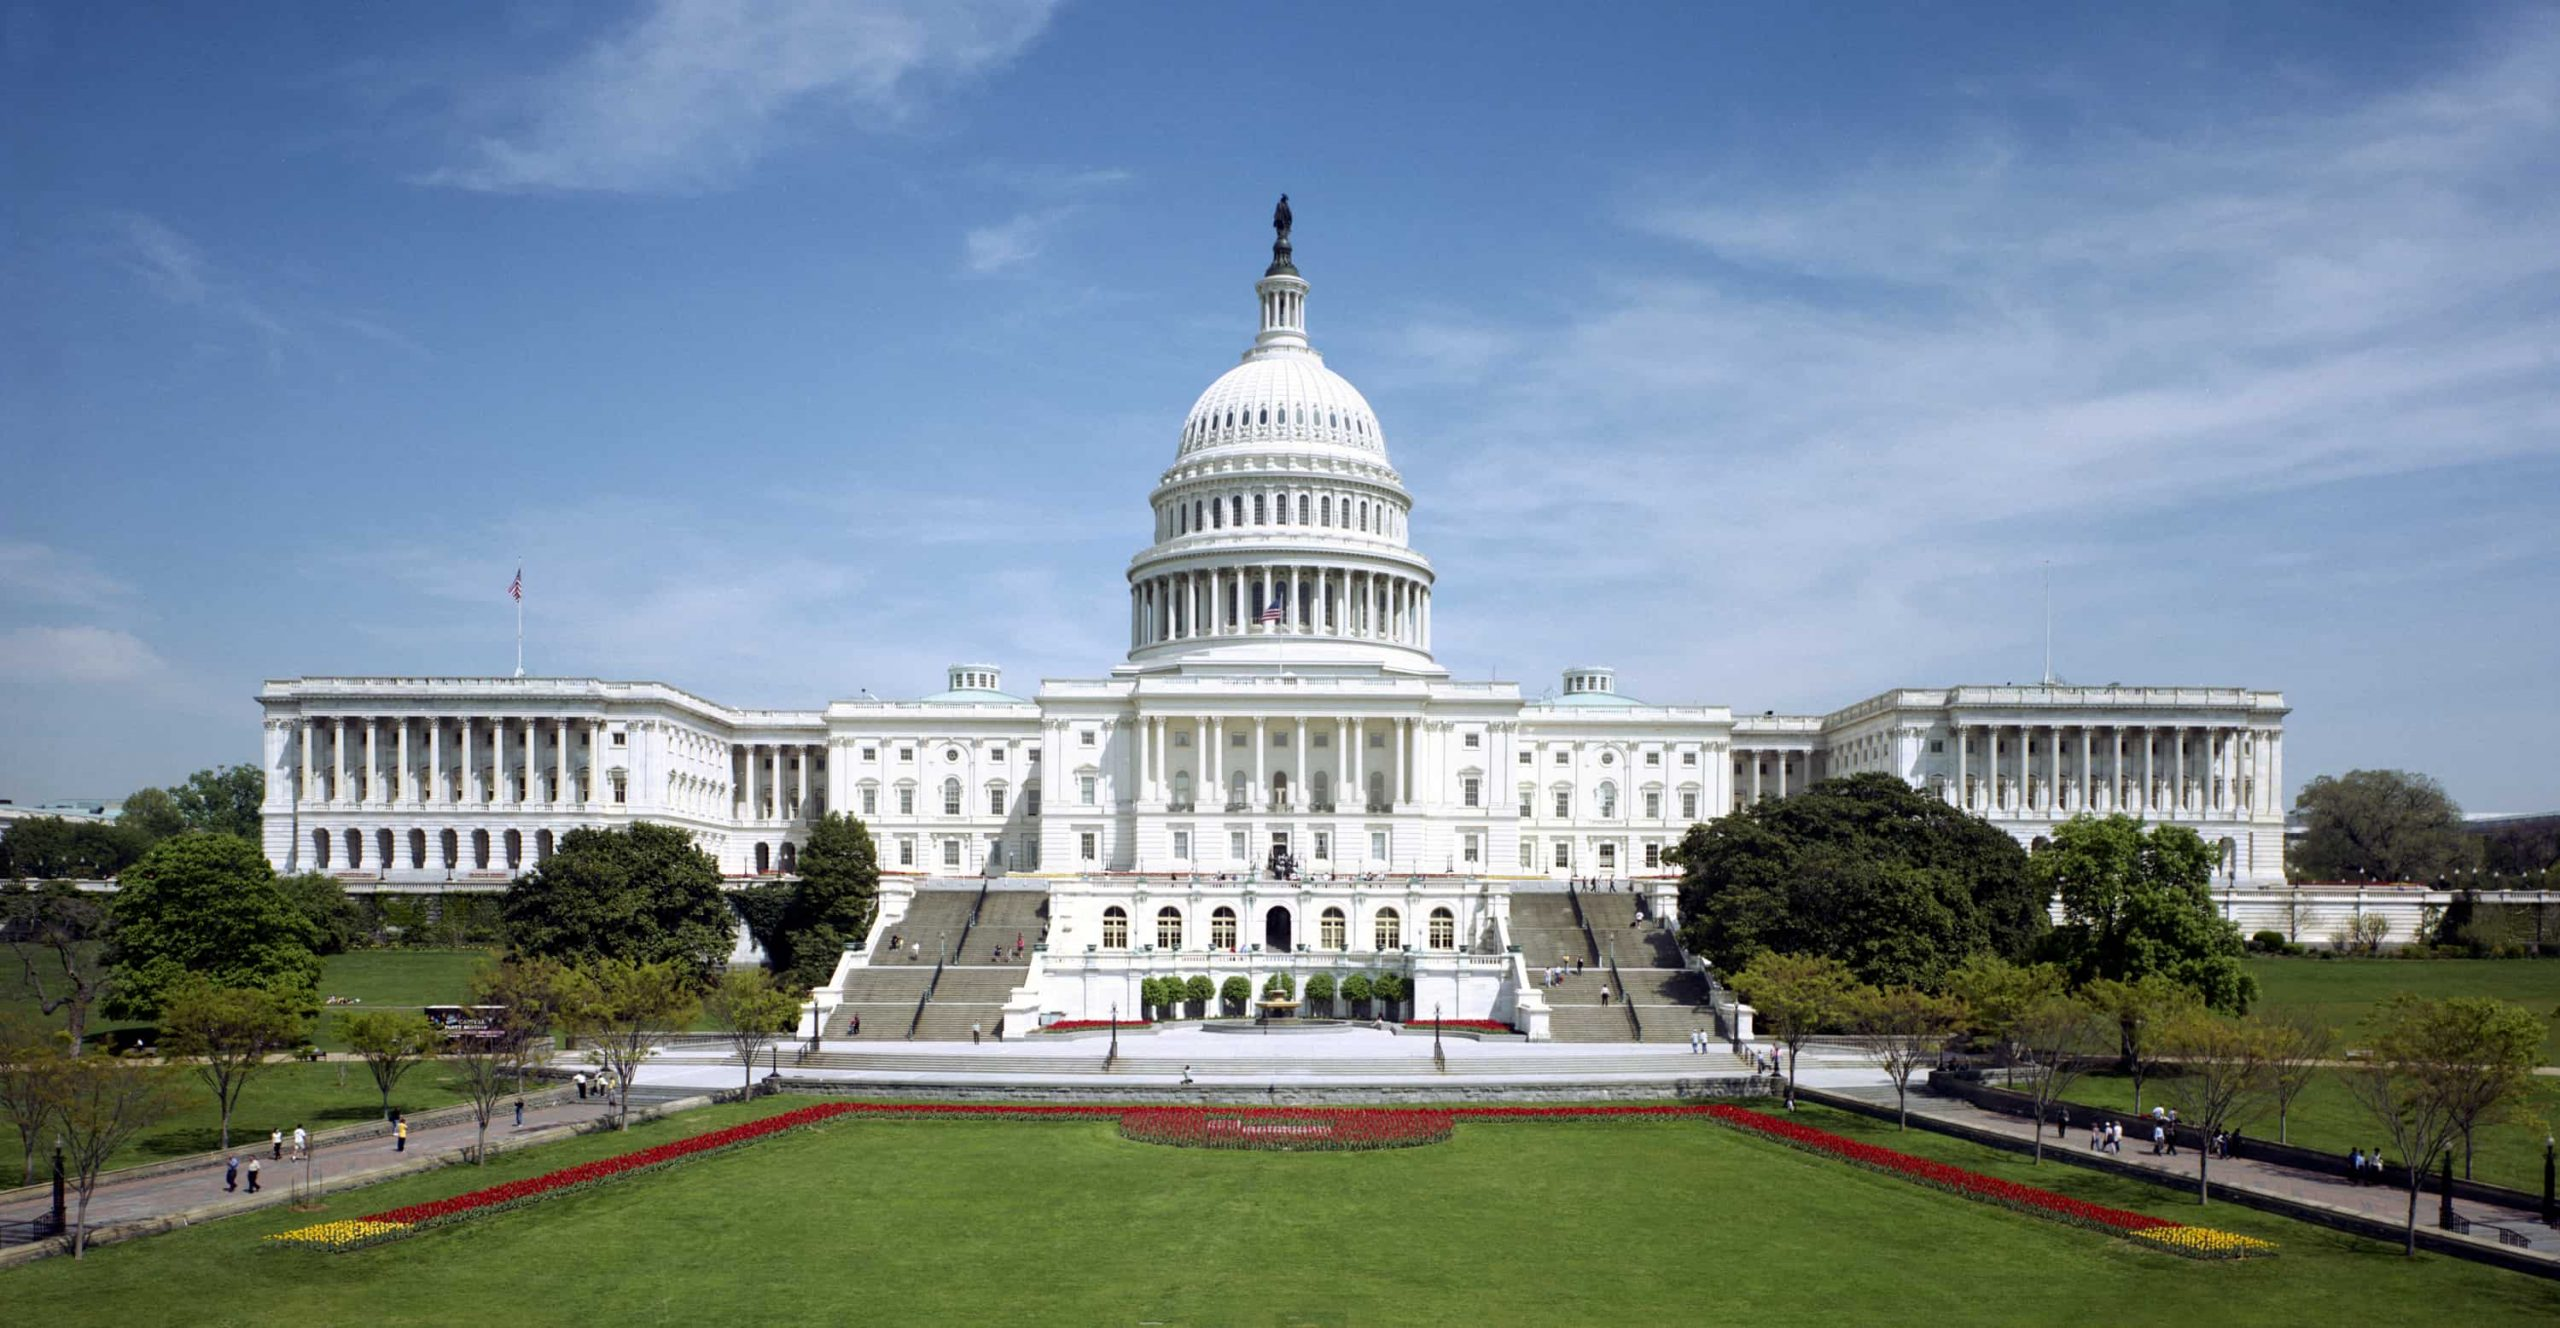 The Capitol, twhere the United States Congress meets